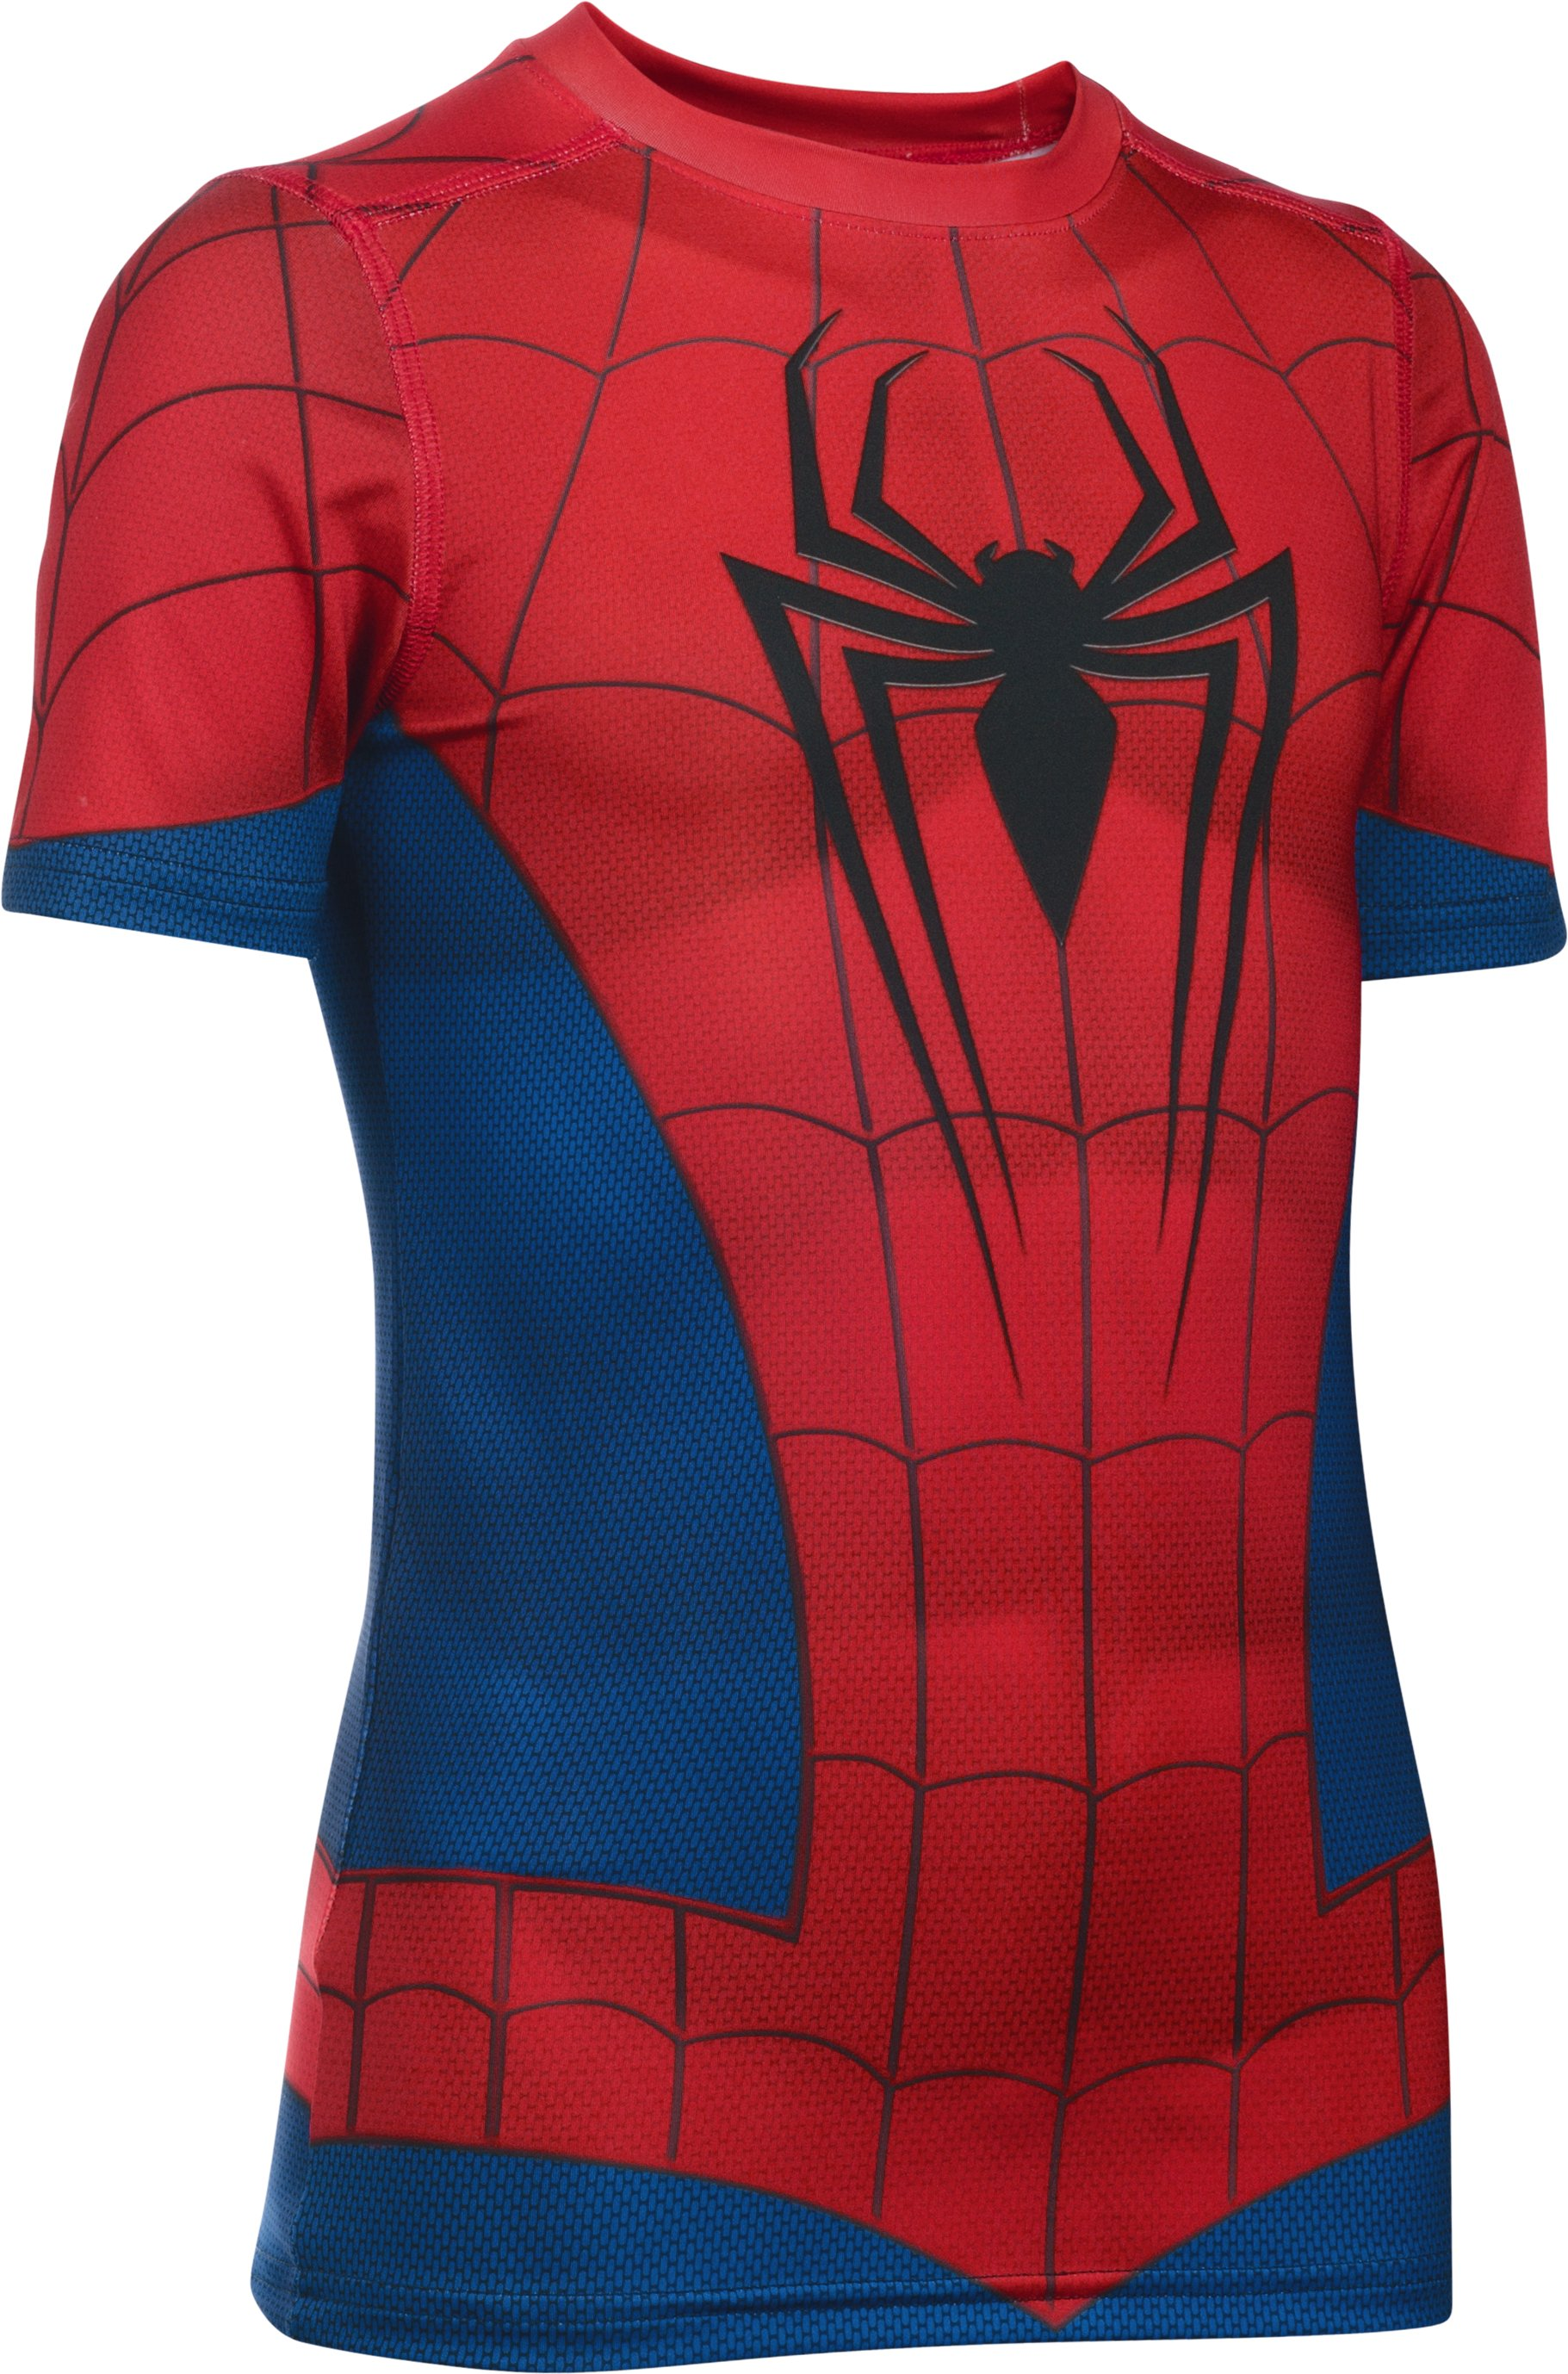 youth large shirts Boys' Under Armour® Alter Ego Spider-Man Fitted Shirt What I mean is that the print is shaded to fit a smaller person, so the shading ended up across my chest, rather then below it _ it looked really funny....It didn't fit right either, since it was a youth size; really supper baggy around the waste and pretty stretched across the chest....I'm 6 feet with a 40 inch chest and 30 inch waste, so I thought I would try ordering the largest boys size, and it almost worked out except that the print didn't line up.